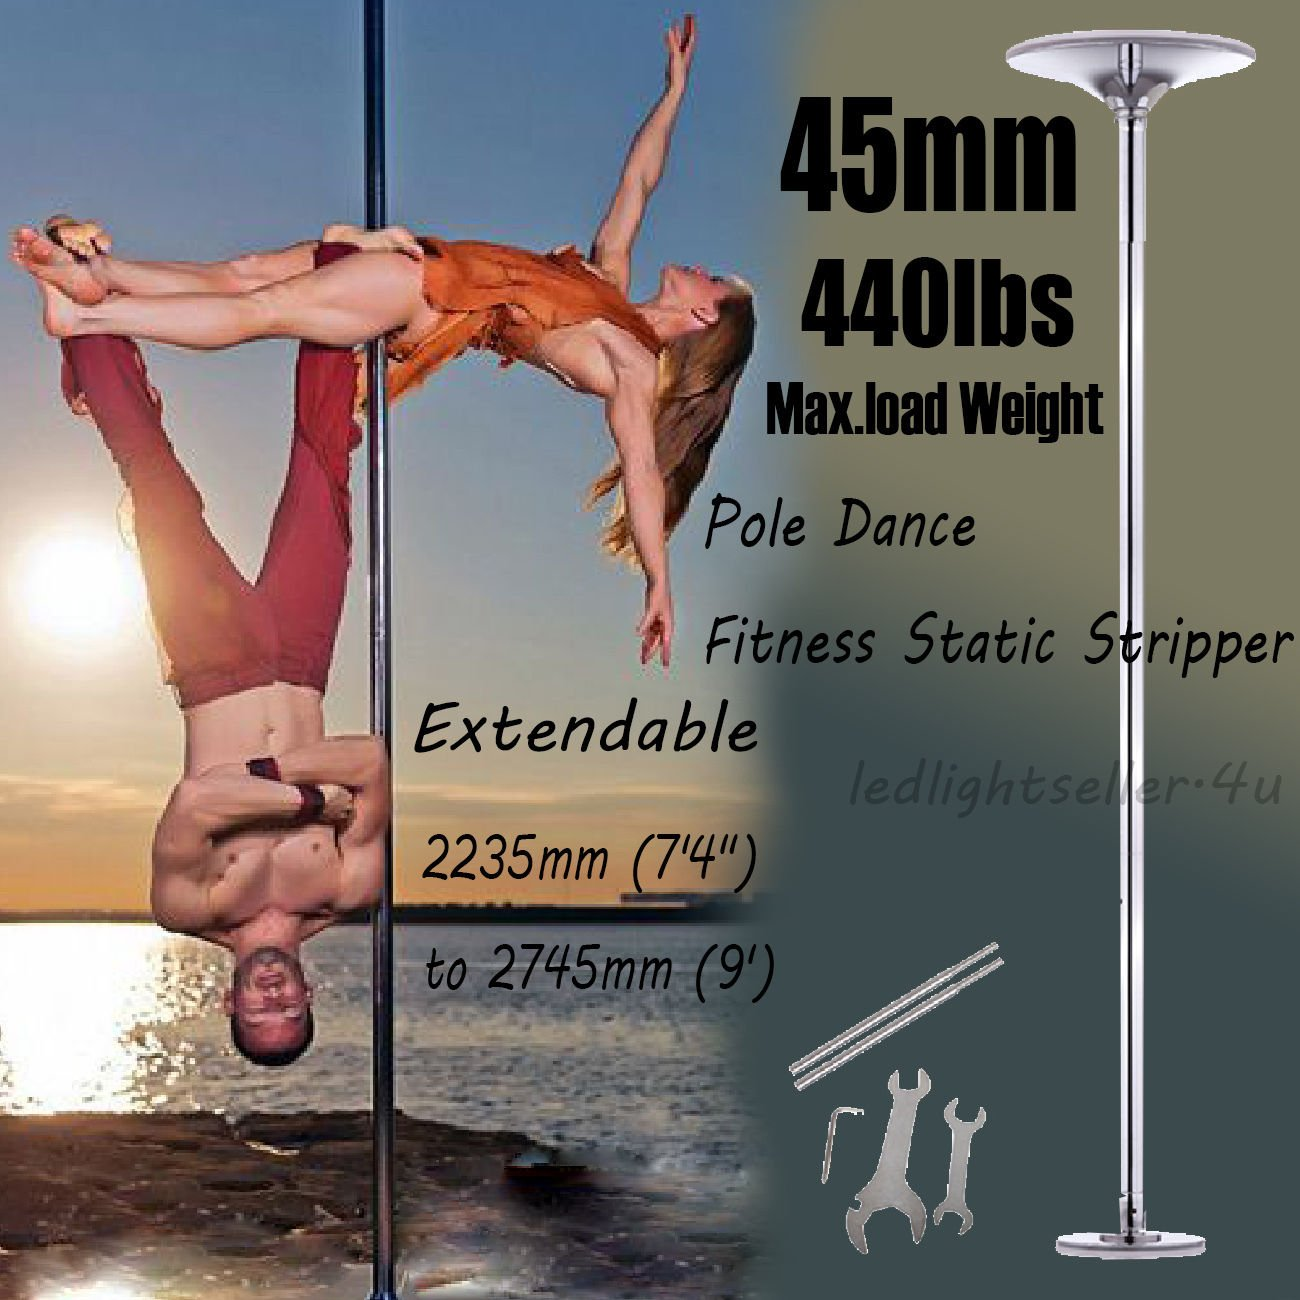 PanelTech Portable 45mm Fitness Exercise Spinning Static Dance Pole Stripper Strip Portable 440lbs by PanelTech